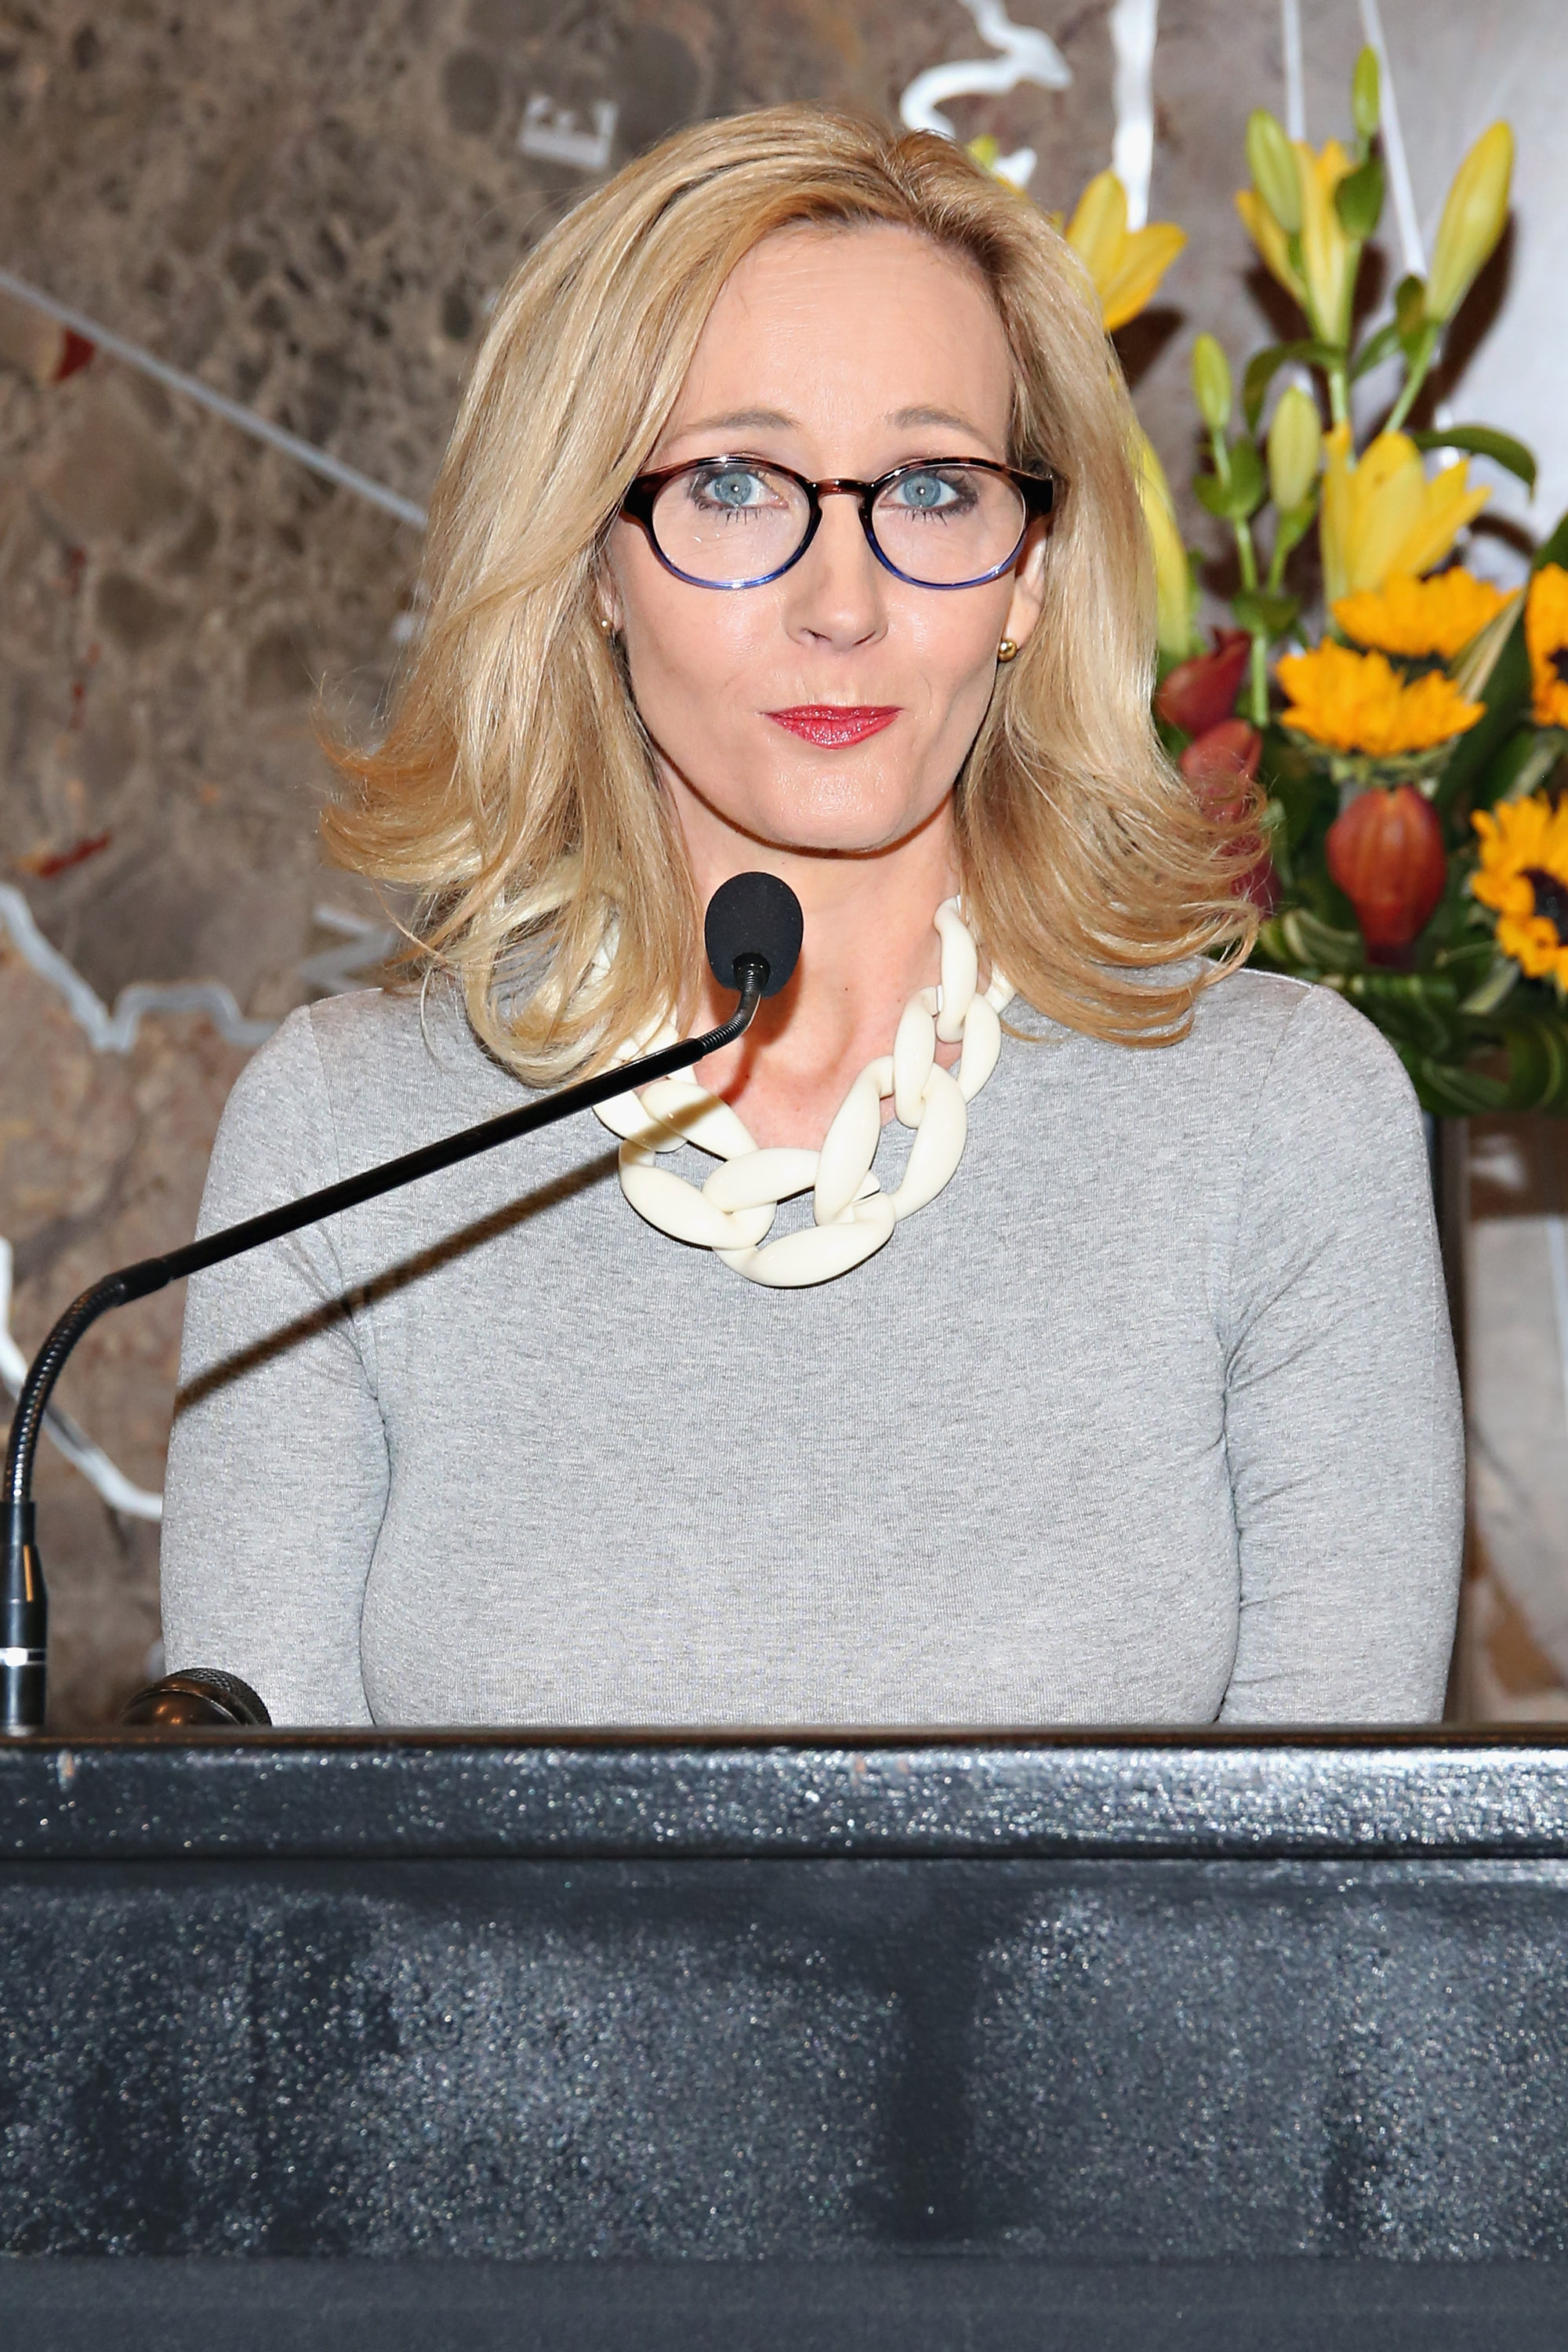 JK Rowling Hilariously Uses Harry Potter to Shut Down Donald Trump Aides Offensive Tweet